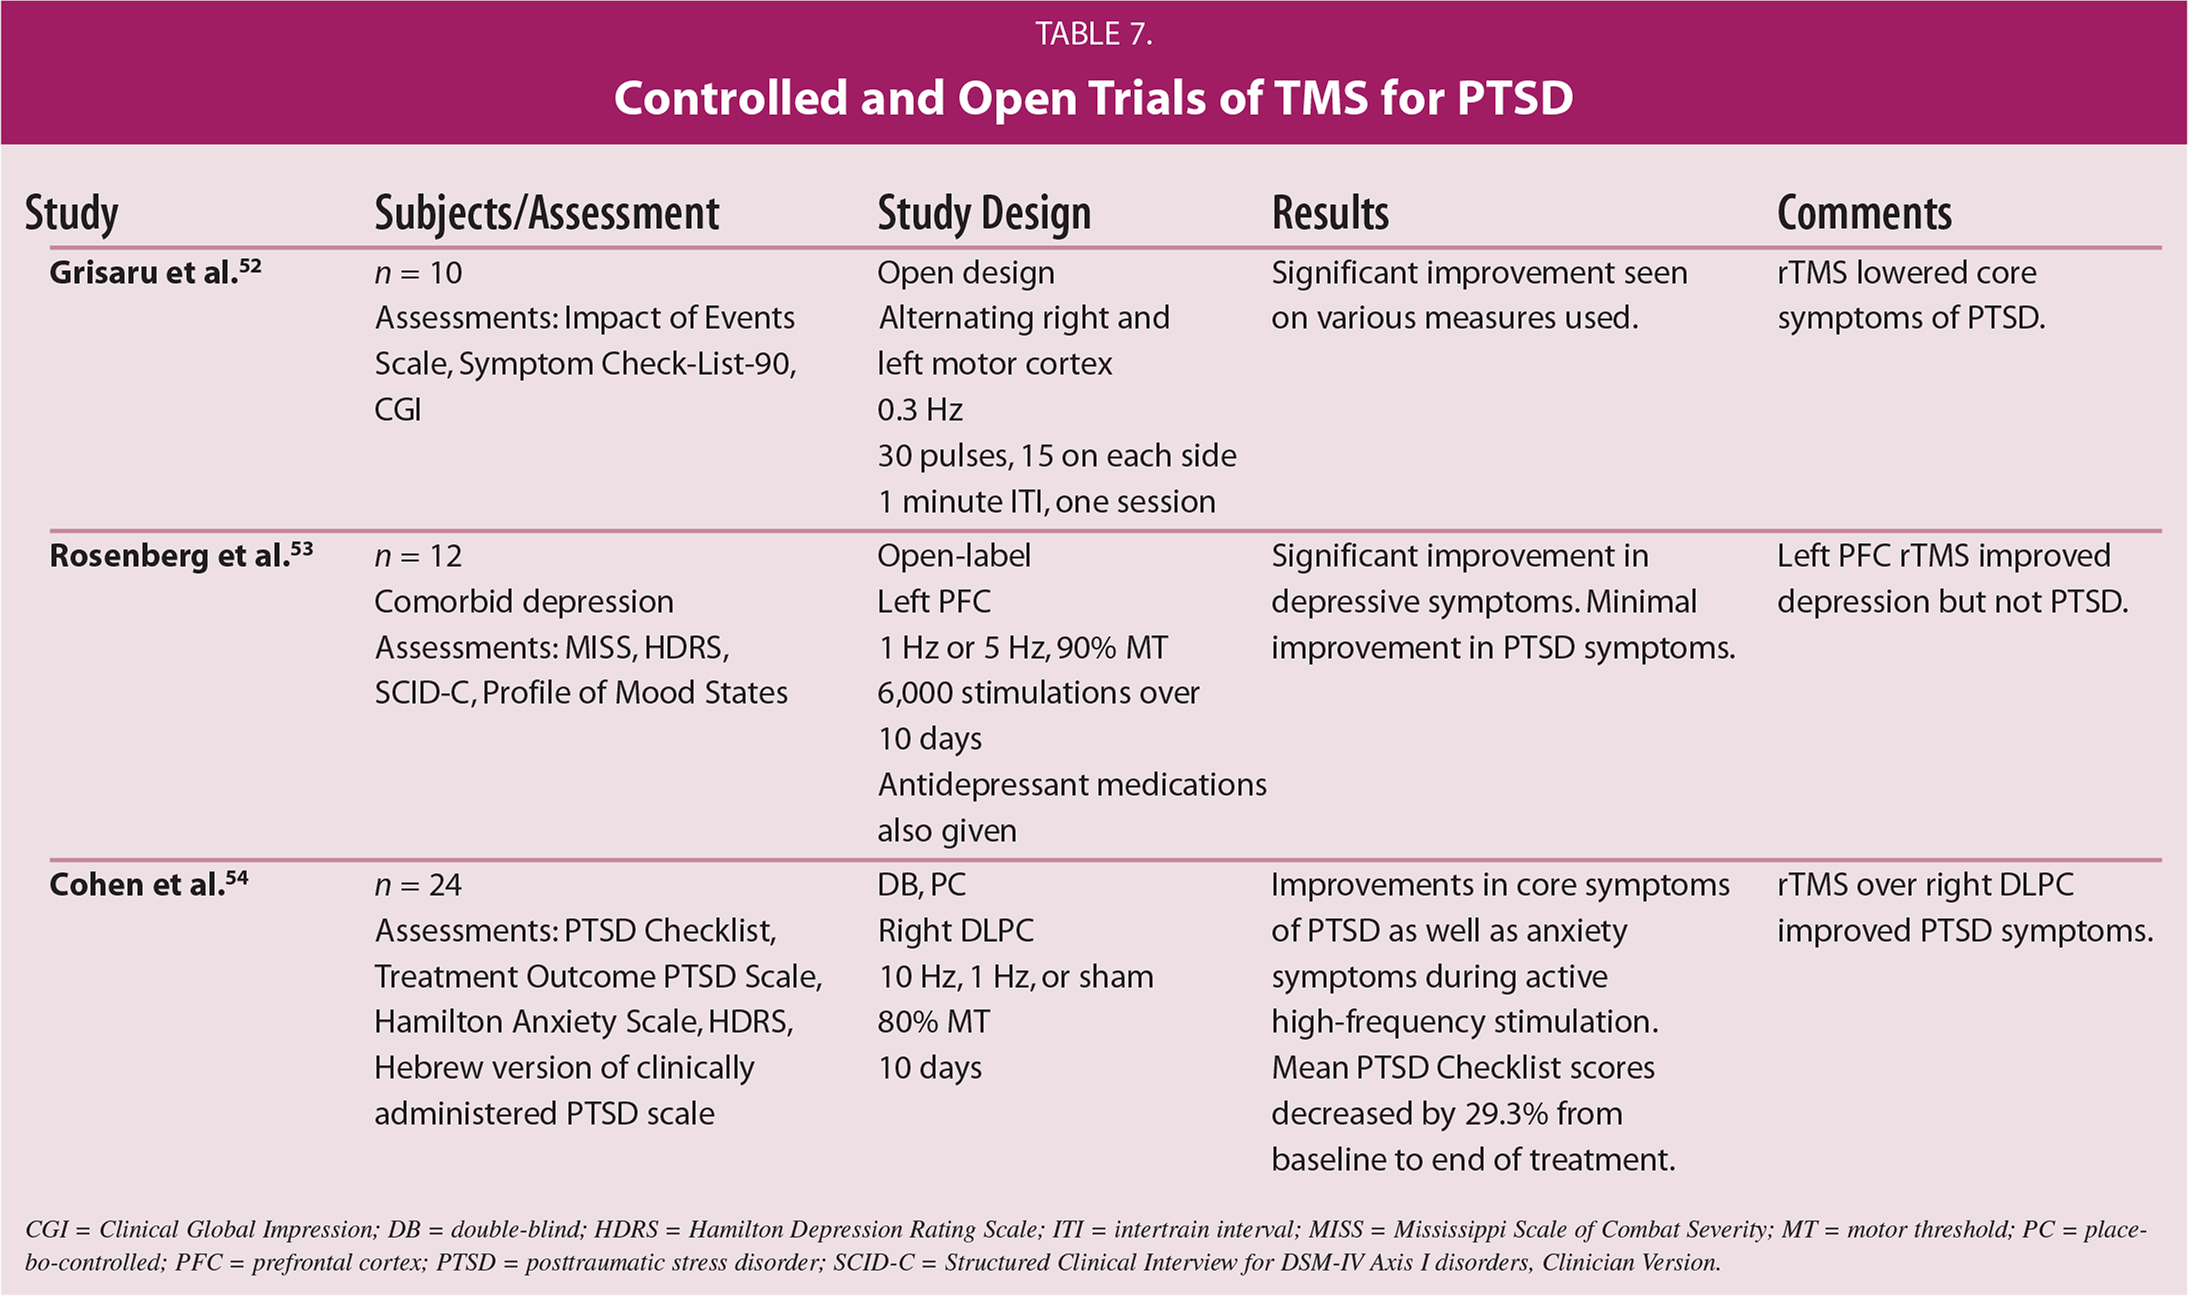 Controlled and Open Trials of TMS for PTSD